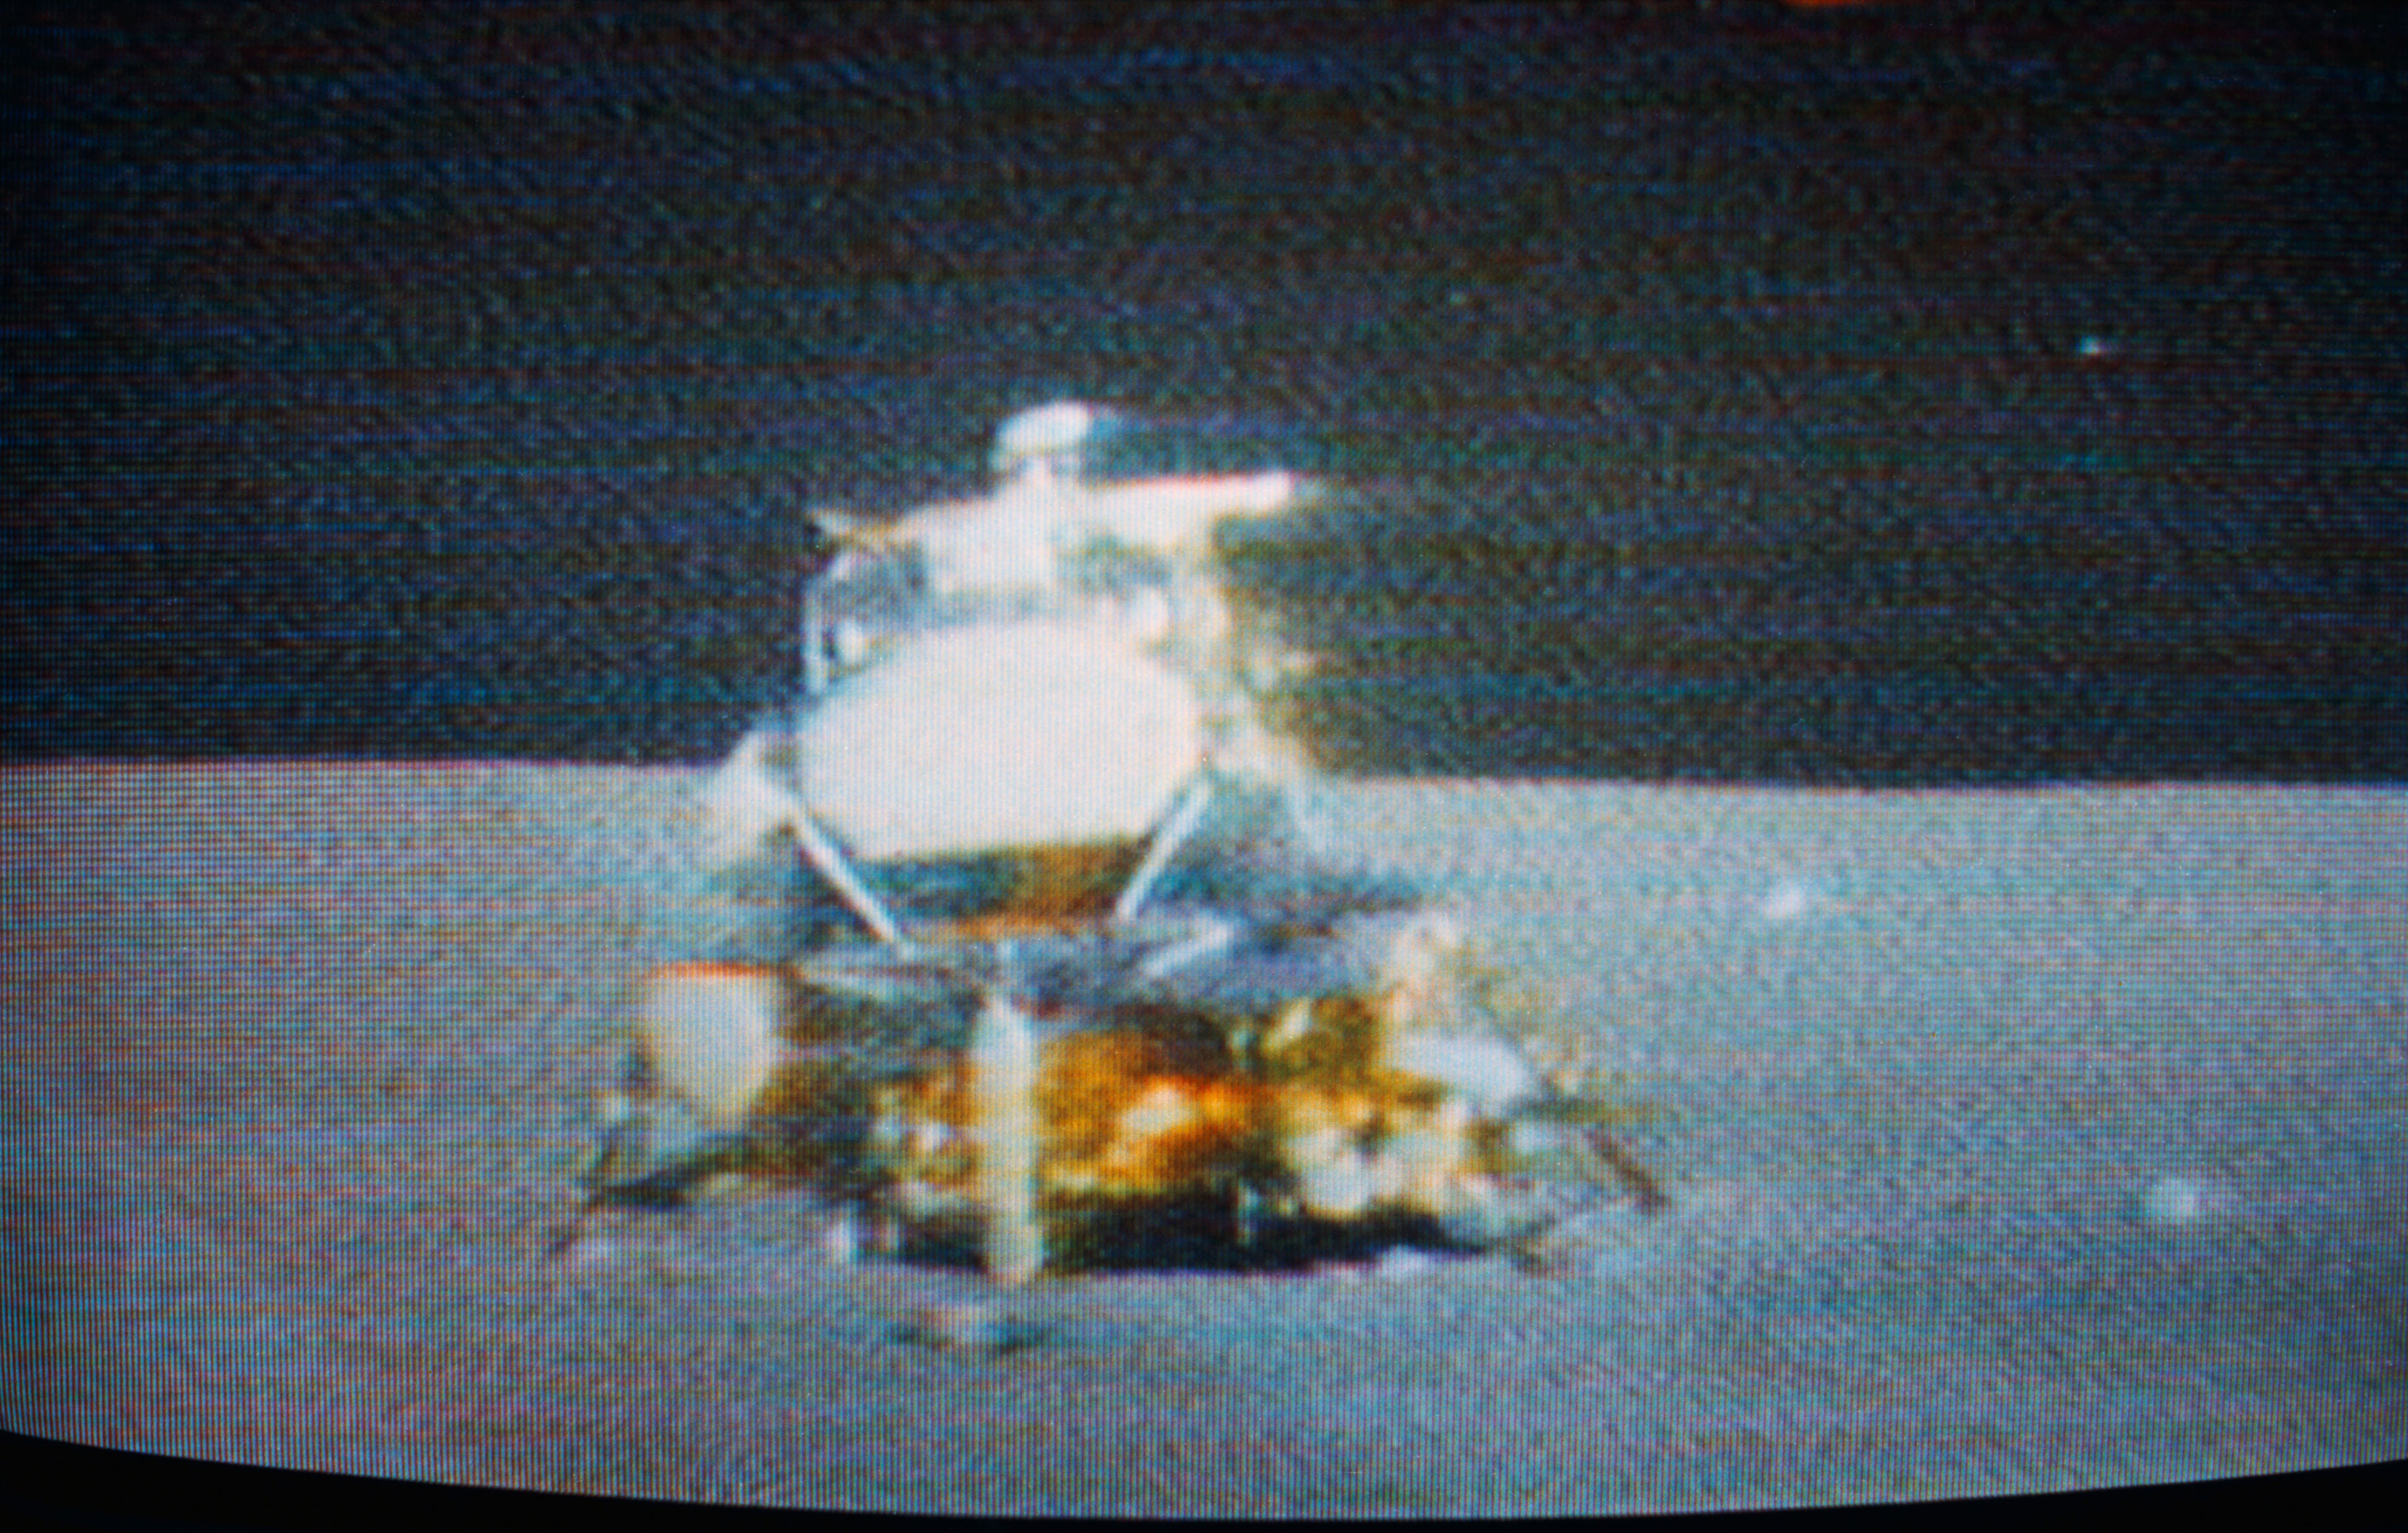 TV screen showing lunar module on the lunar surface just before liftoff to meet with the Command module.